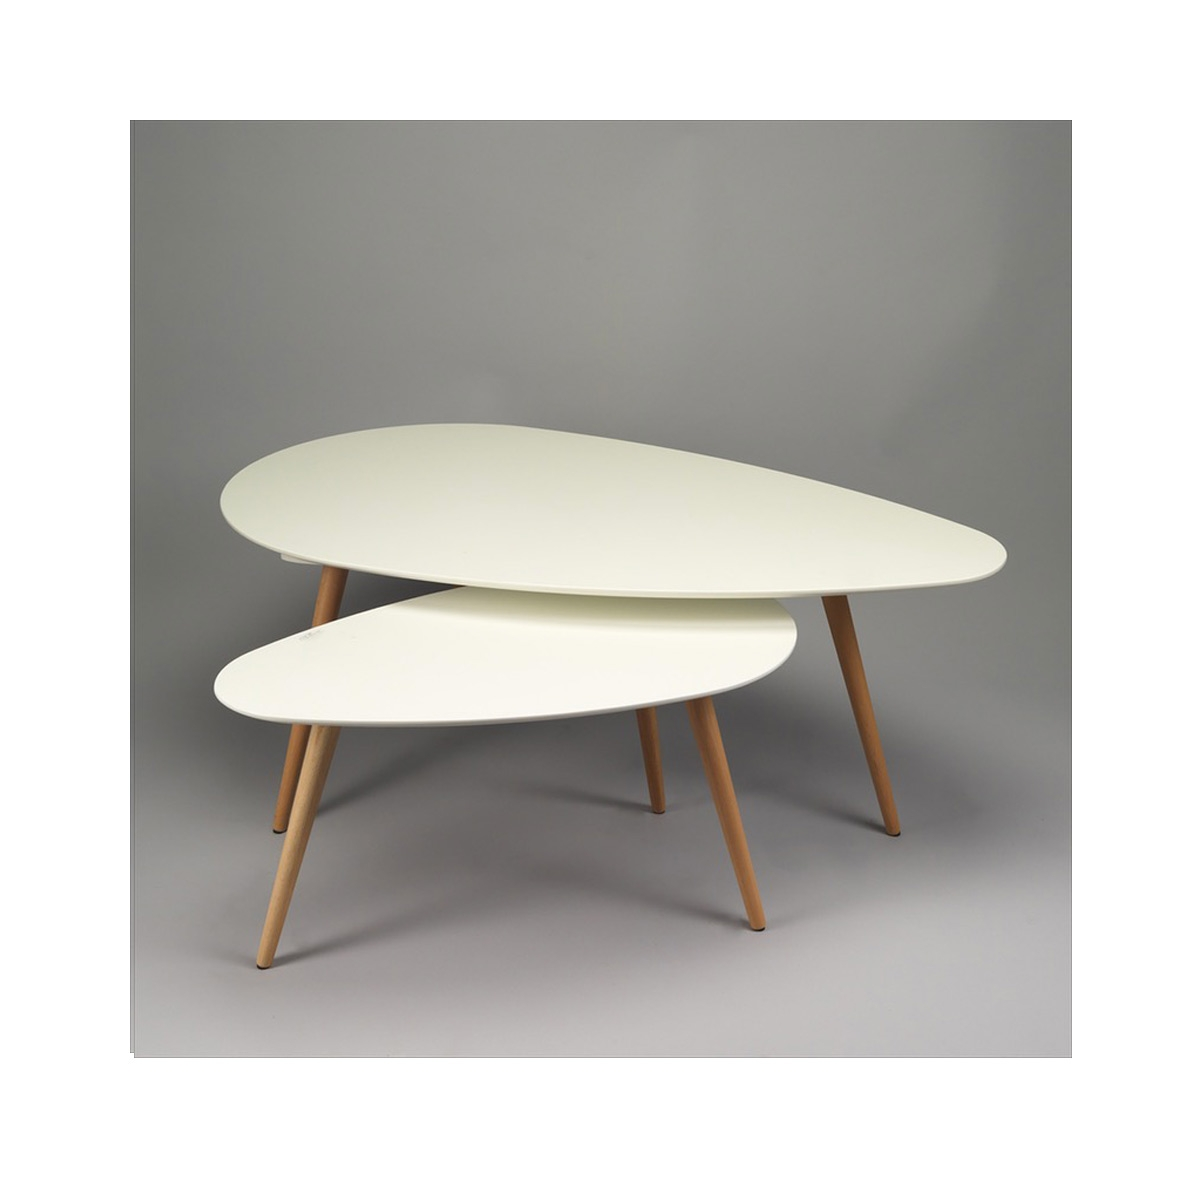 Prix des table gigogne - Table basse contemporaine design ...